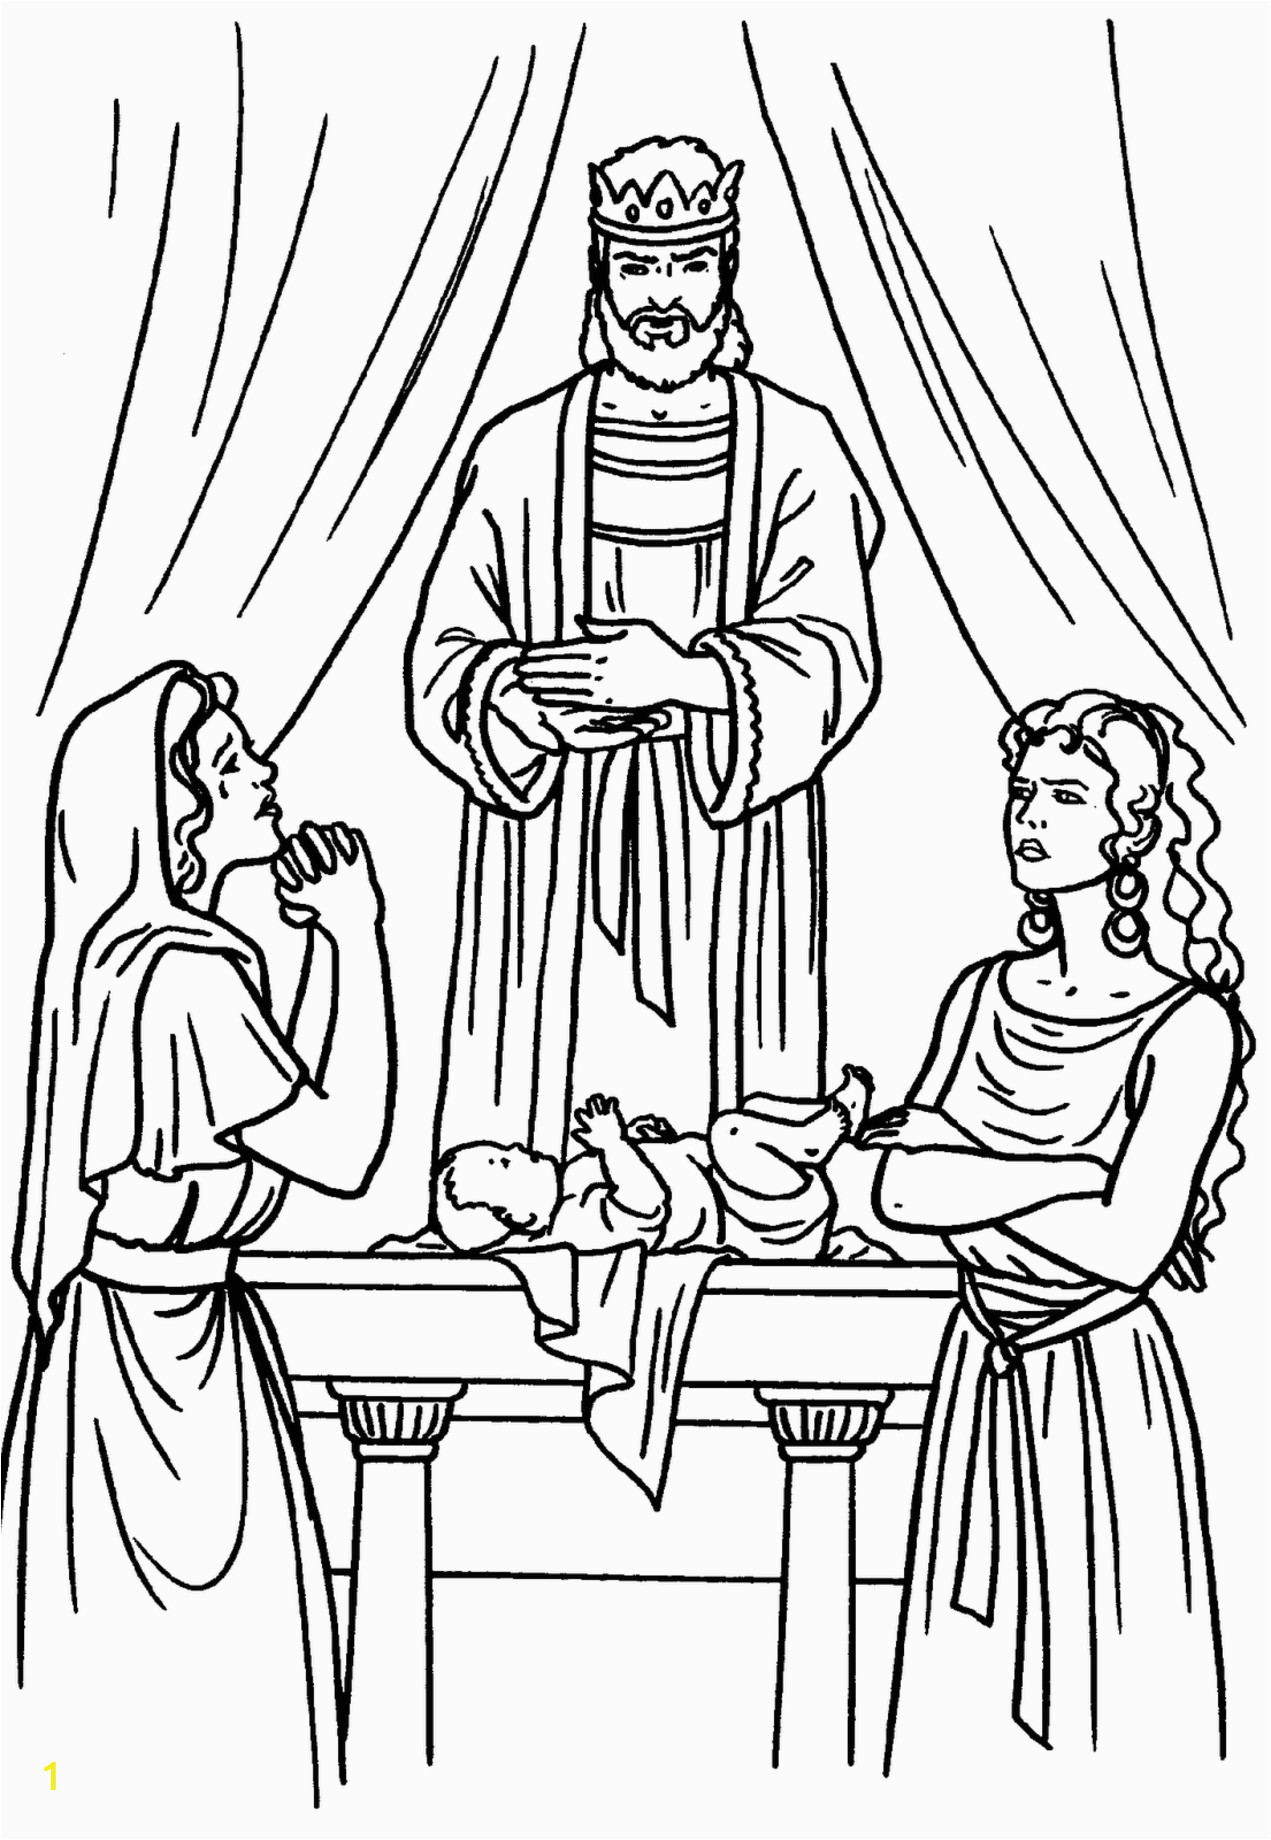 King solomon and the Baby Coloring Pages solomon Two Women and A Baby Bible Coloring Page